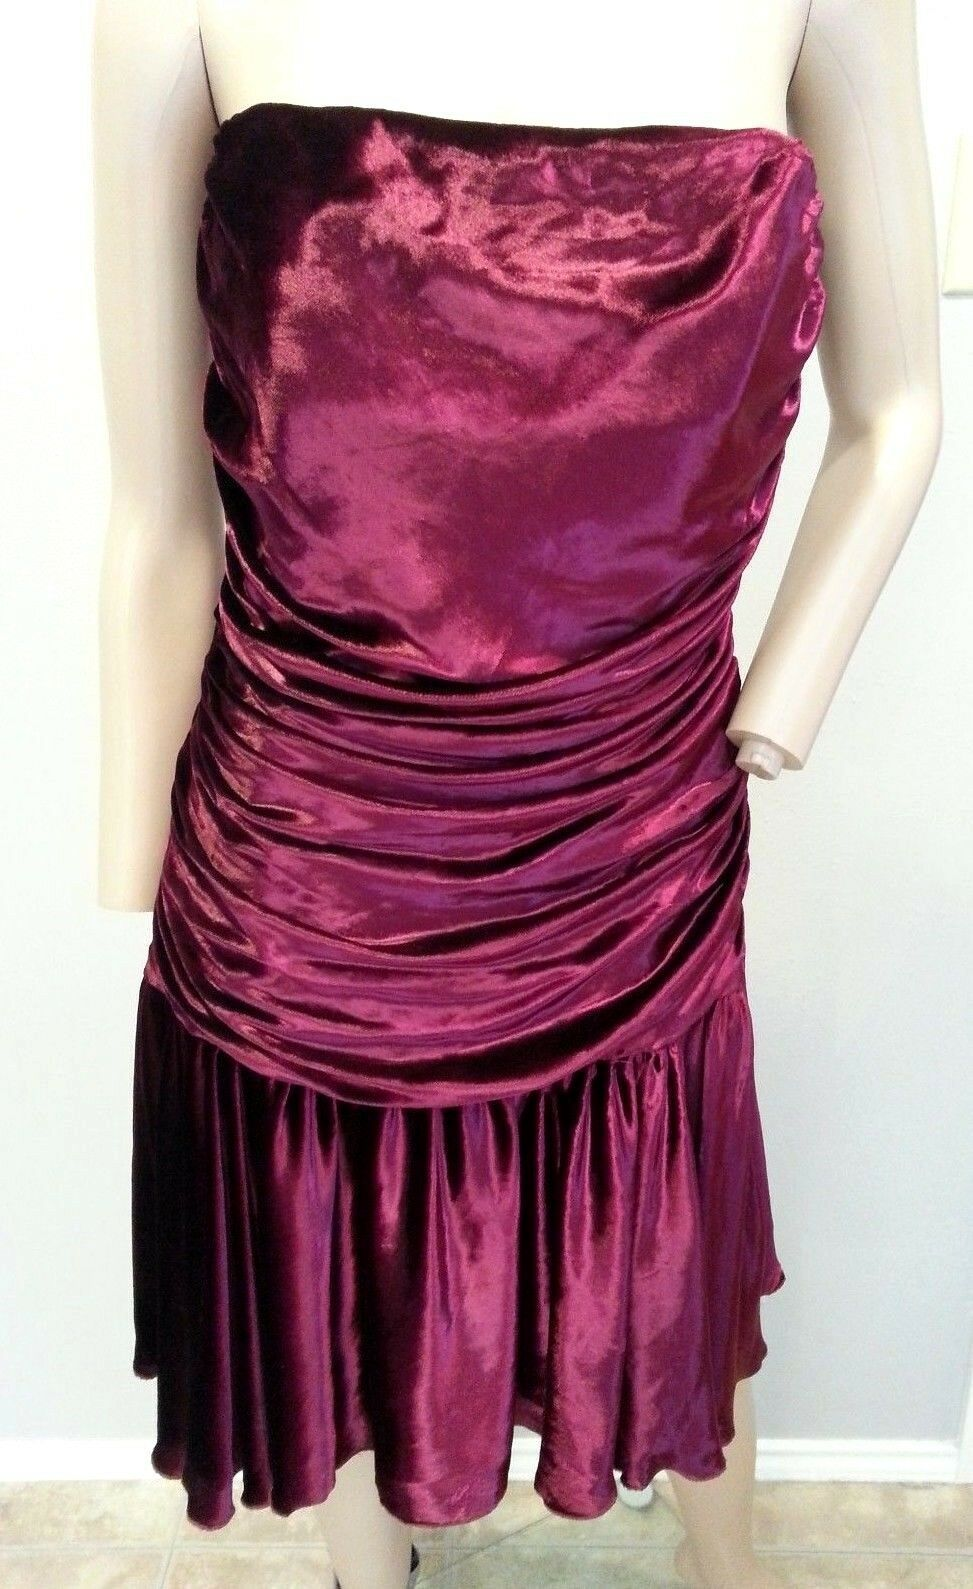 Vintage 27.4ms Betsey Johnson Ny Marron Rouge Foncé Velours Grunge Robe Ruchée 6